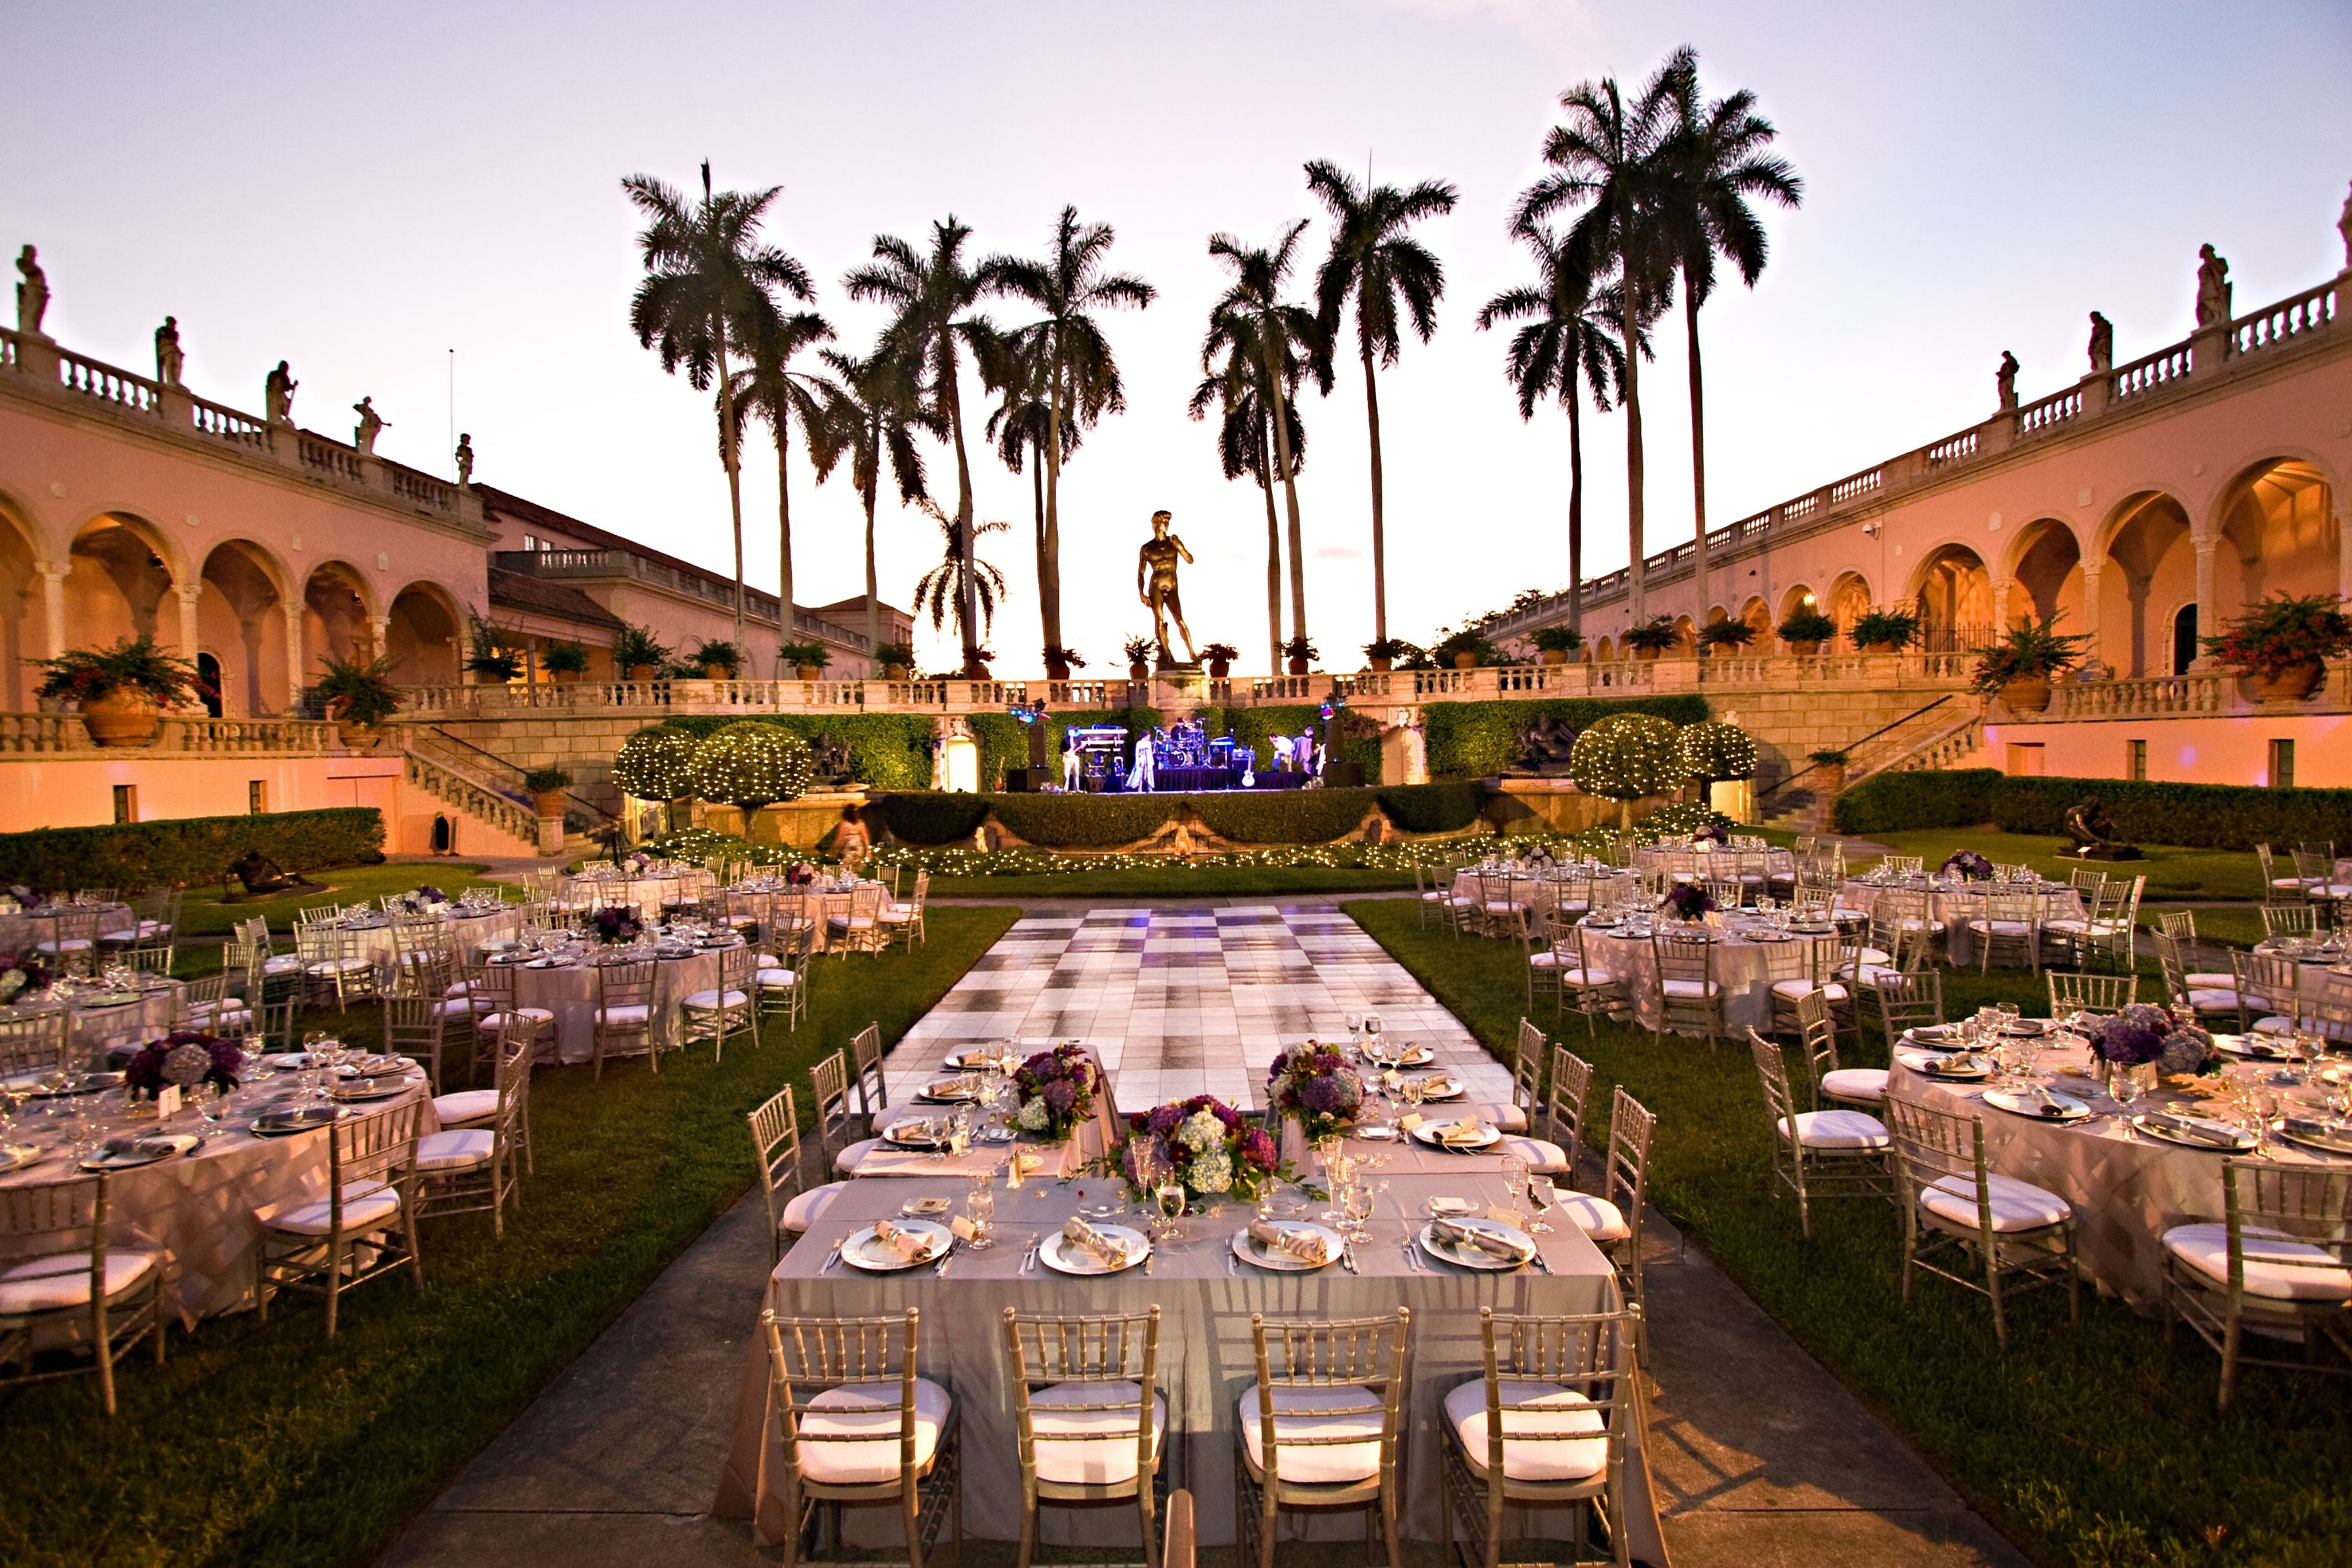 Courtyard Wedding At Ringling Museum Of Art Florida Venues Locations Events